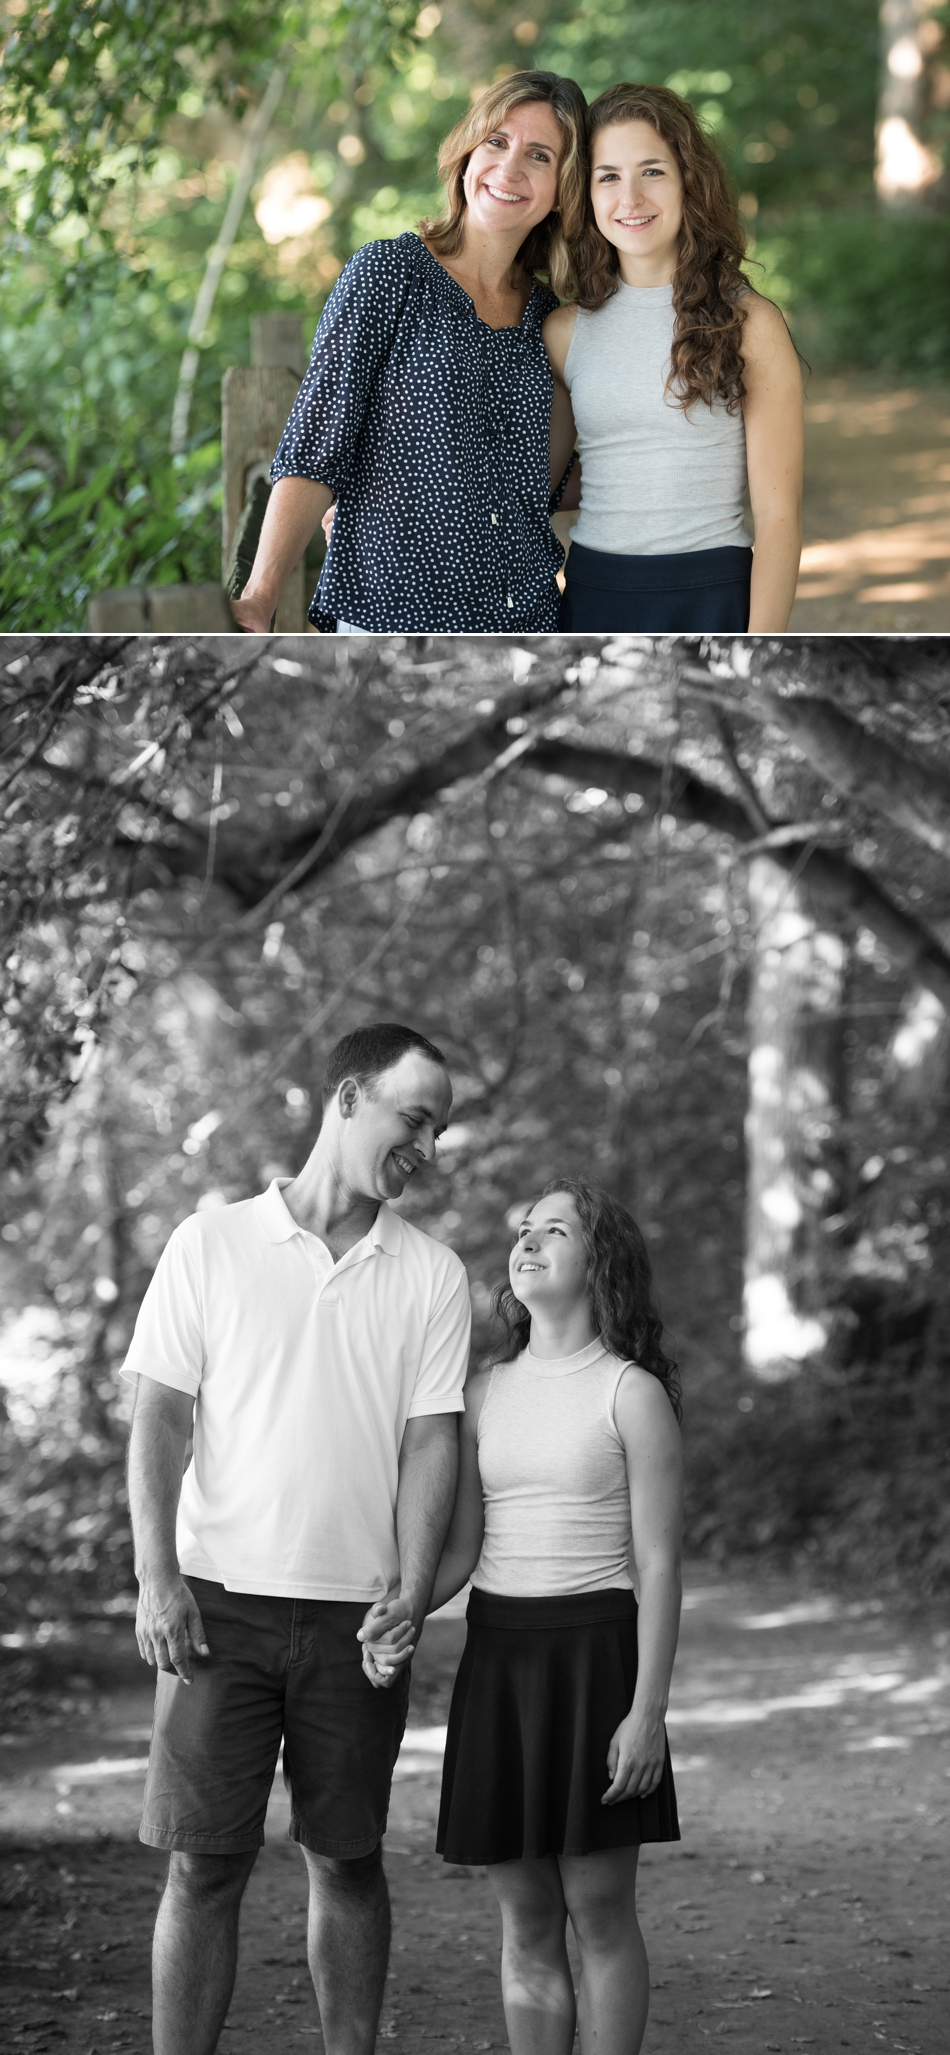 Northern Virginia Family Photographer 7.jpg